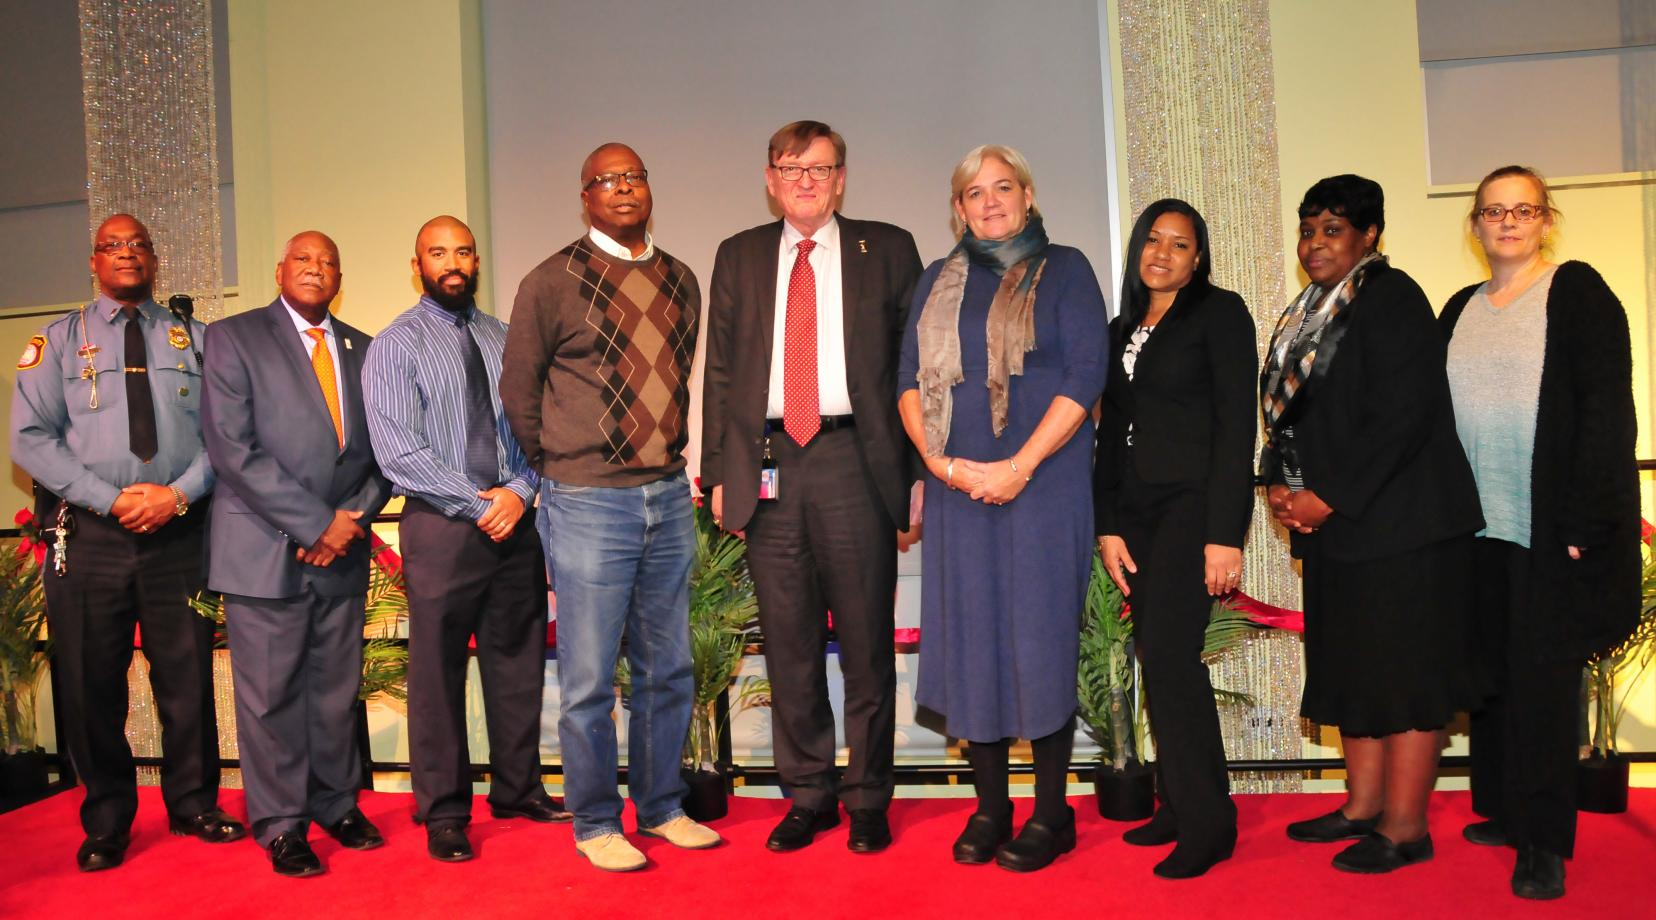 Delaware State University's 2017 Vice Presidents Choice Award recipients: (l-r) Lt. Russell Smith, Bryant T. Bell, Joel Welsh, Dennis Jones, Dr. Bradley Skelcher, Dr. Alexa Silver, Jadeen Notice, Henrietta Savage and Crystal Canon.